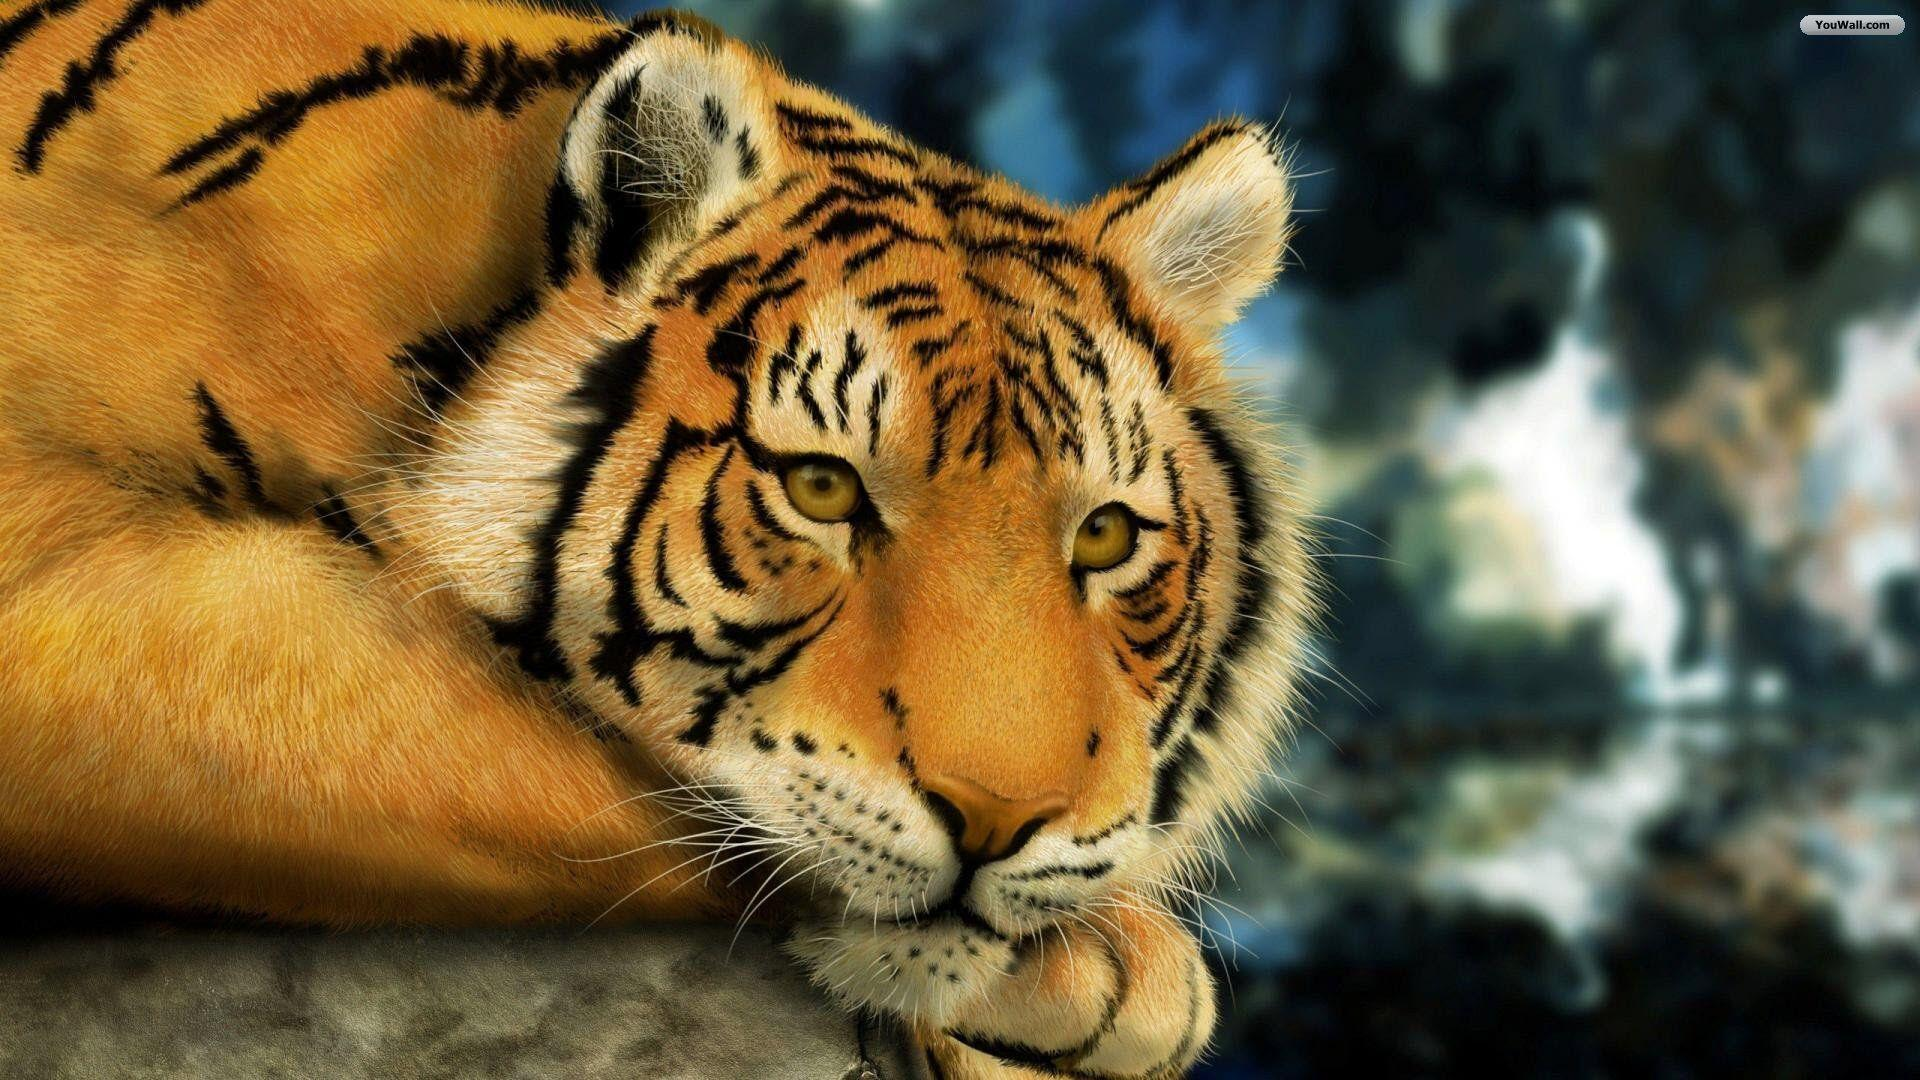 tiger wallpapers - wallpaper cave